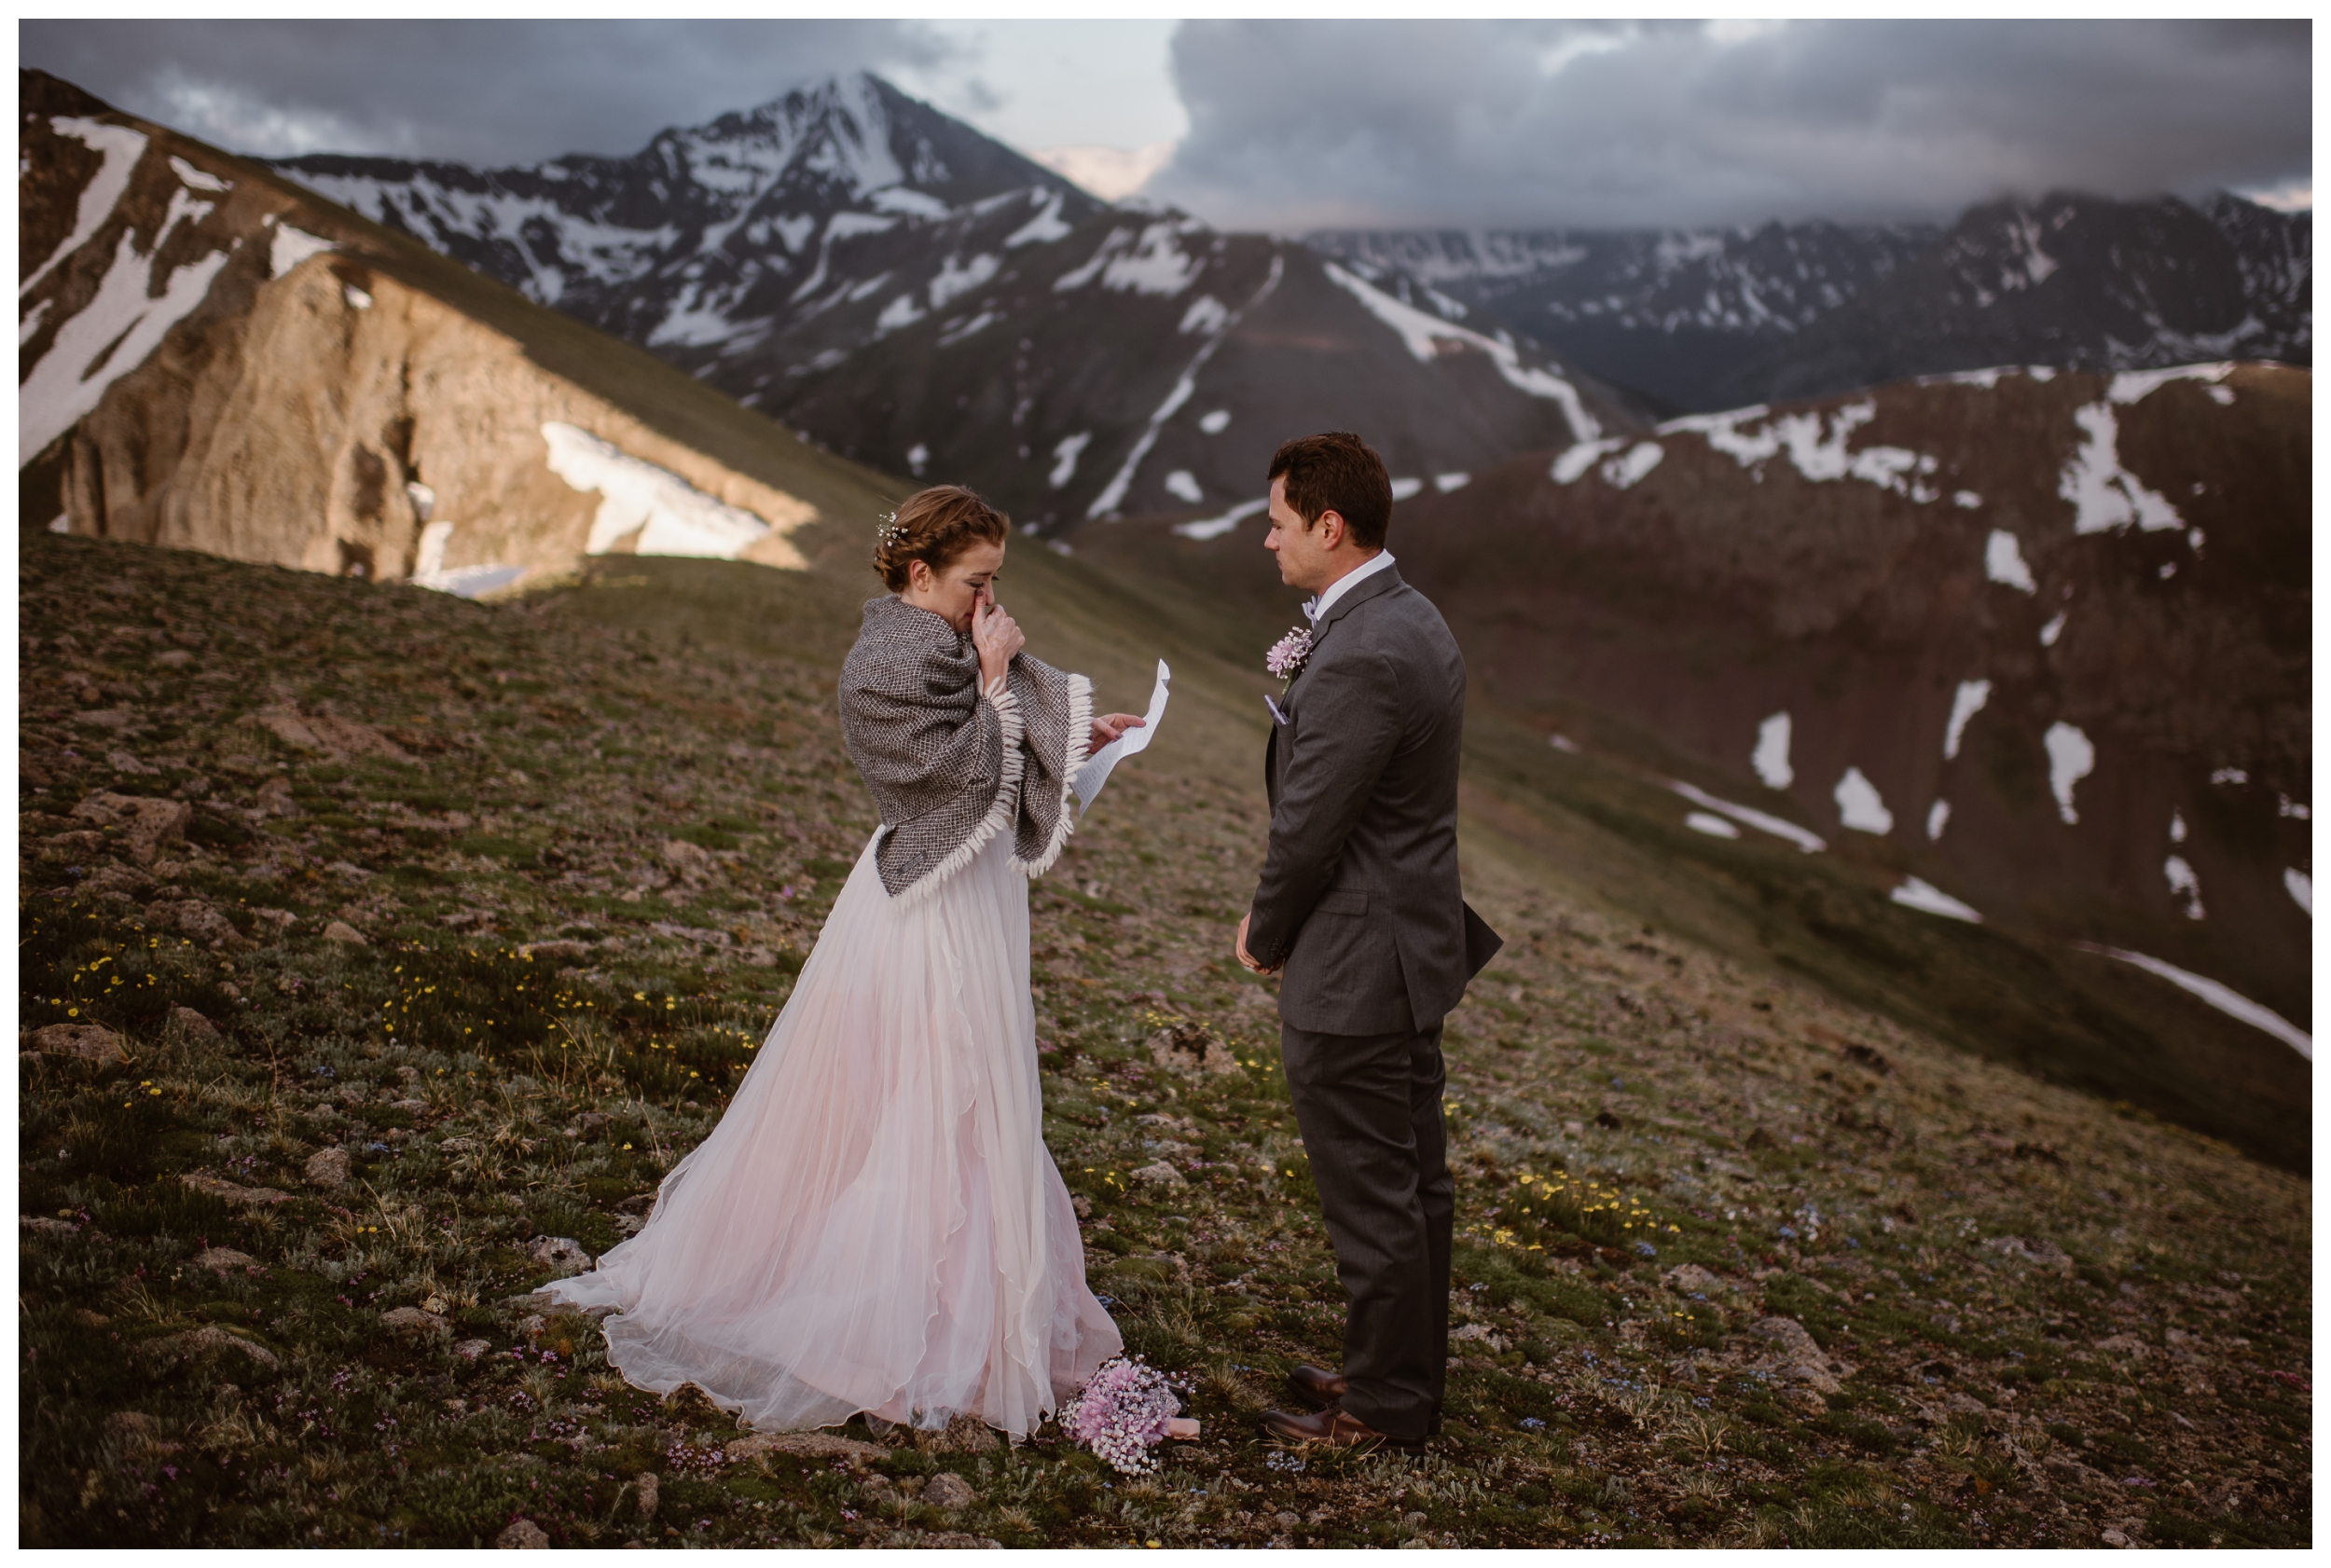 Marcela and Vasily's intimate self solemnizing wedding included them reading their own vows, while surrounded by the high, jagged peaks of the Rocky Mountains. Photo by Maddie Mae, Adventure Instead.